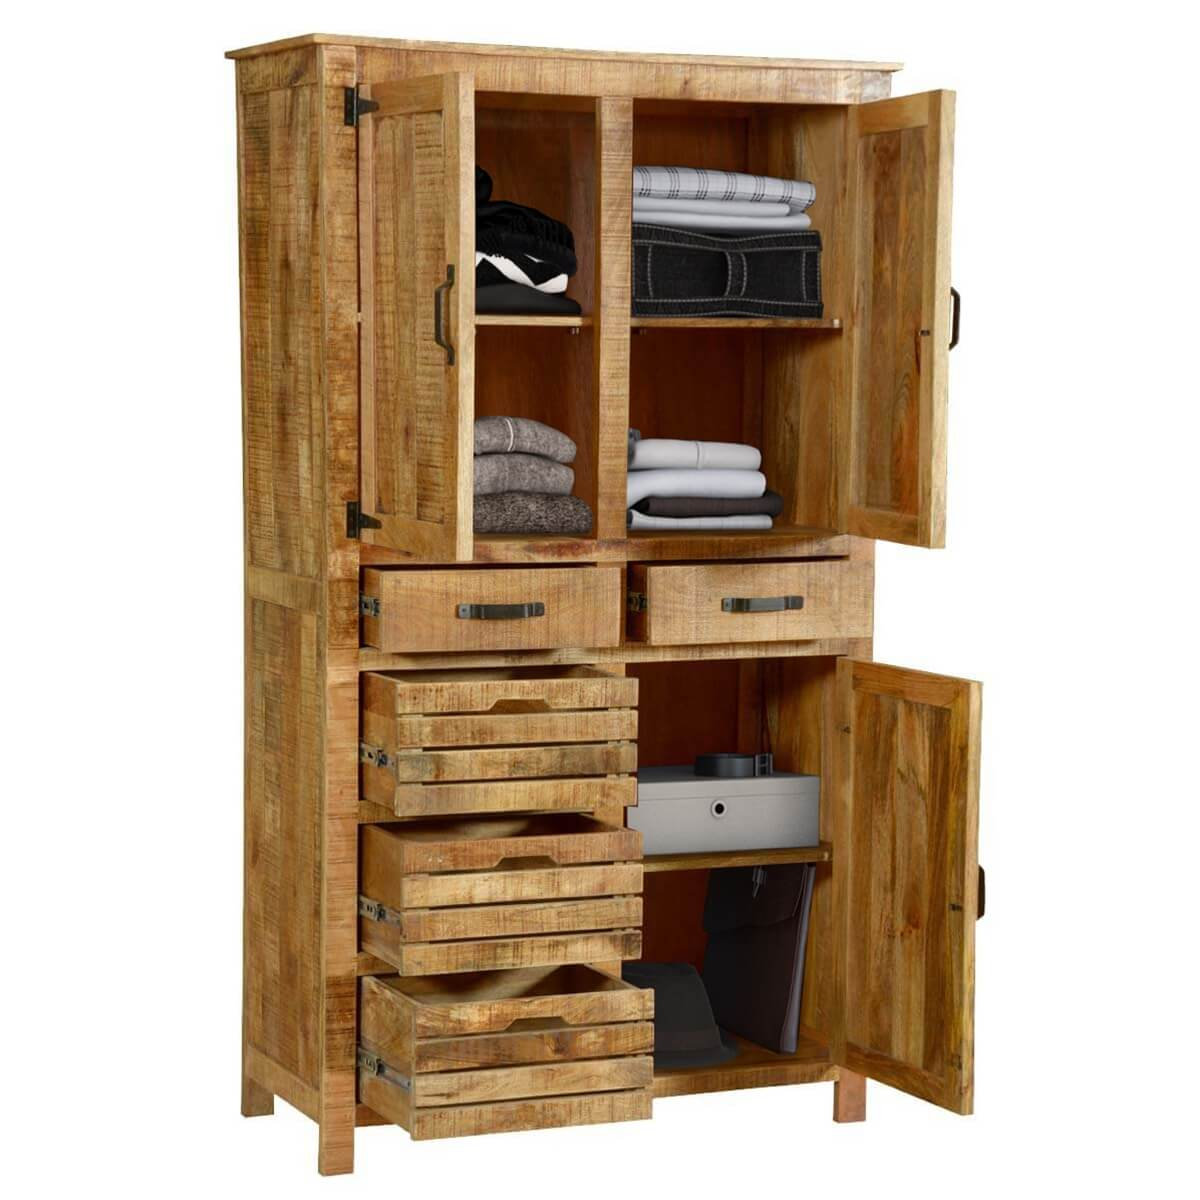 Avon pioneer rustic solid wood tall storage cabinet with 5 drawers